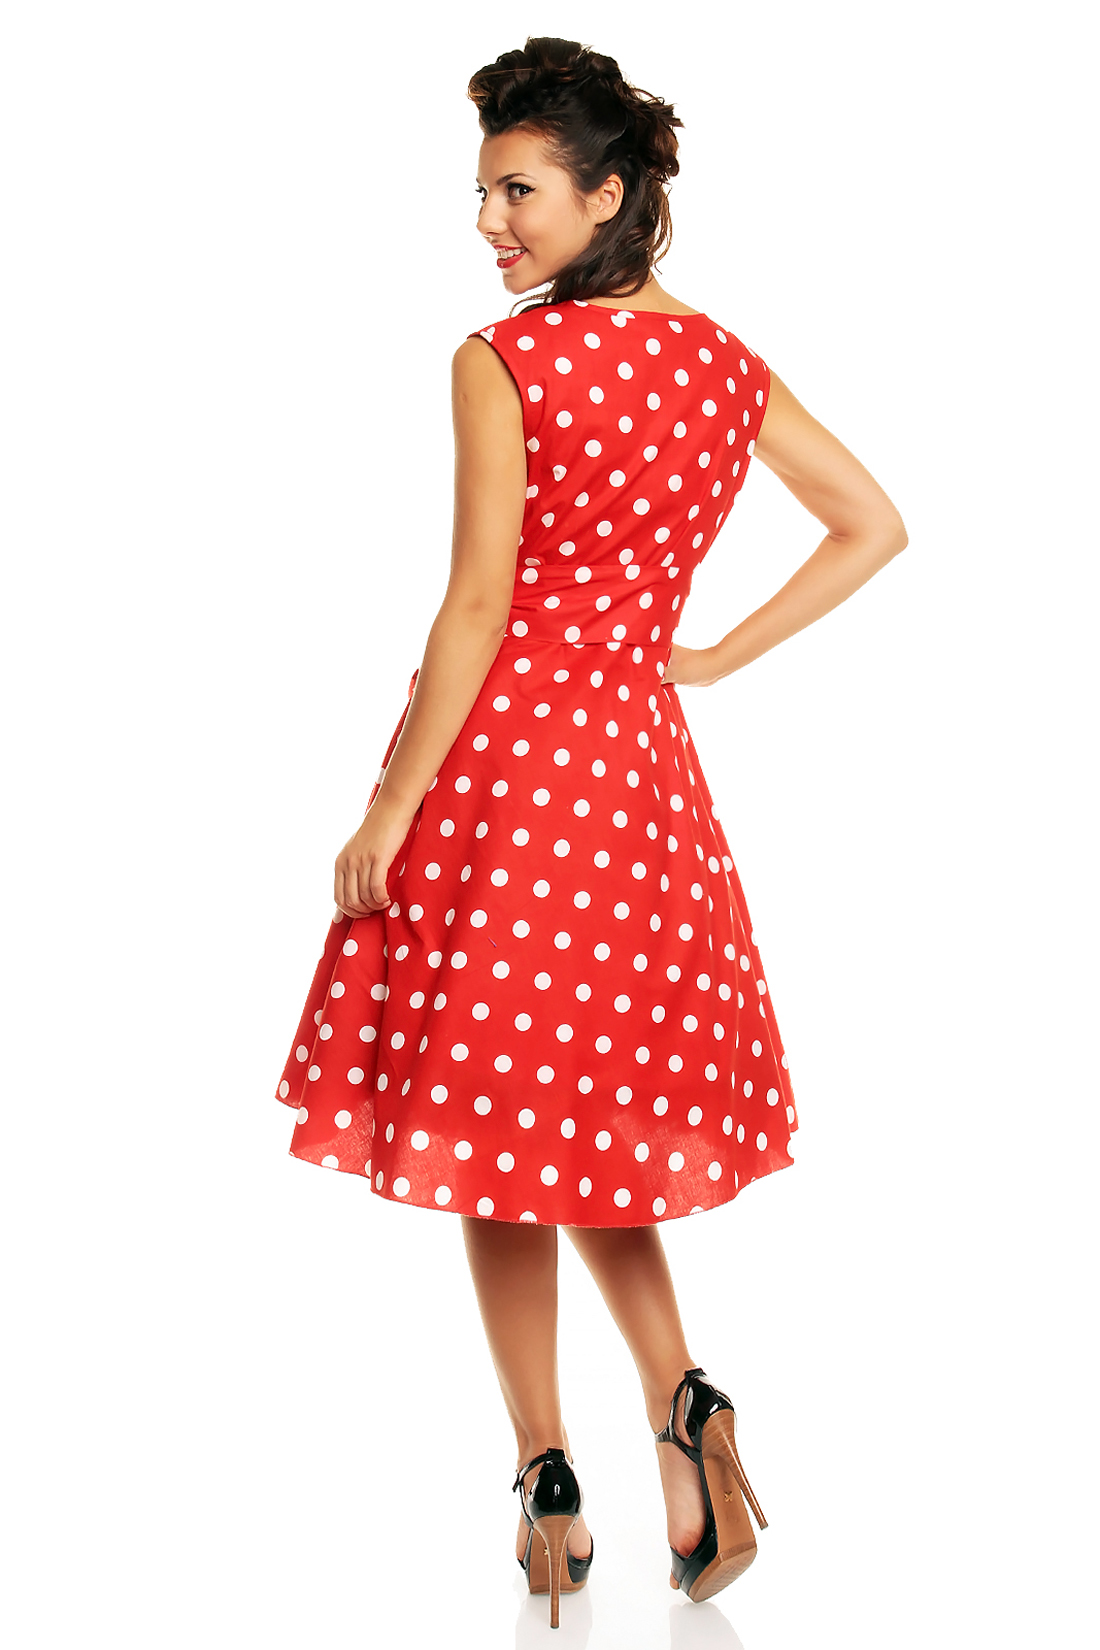 Shop from the world's largest selection and best deals for Polka Dot Dresses for Women. Shop with confidence on eBay!